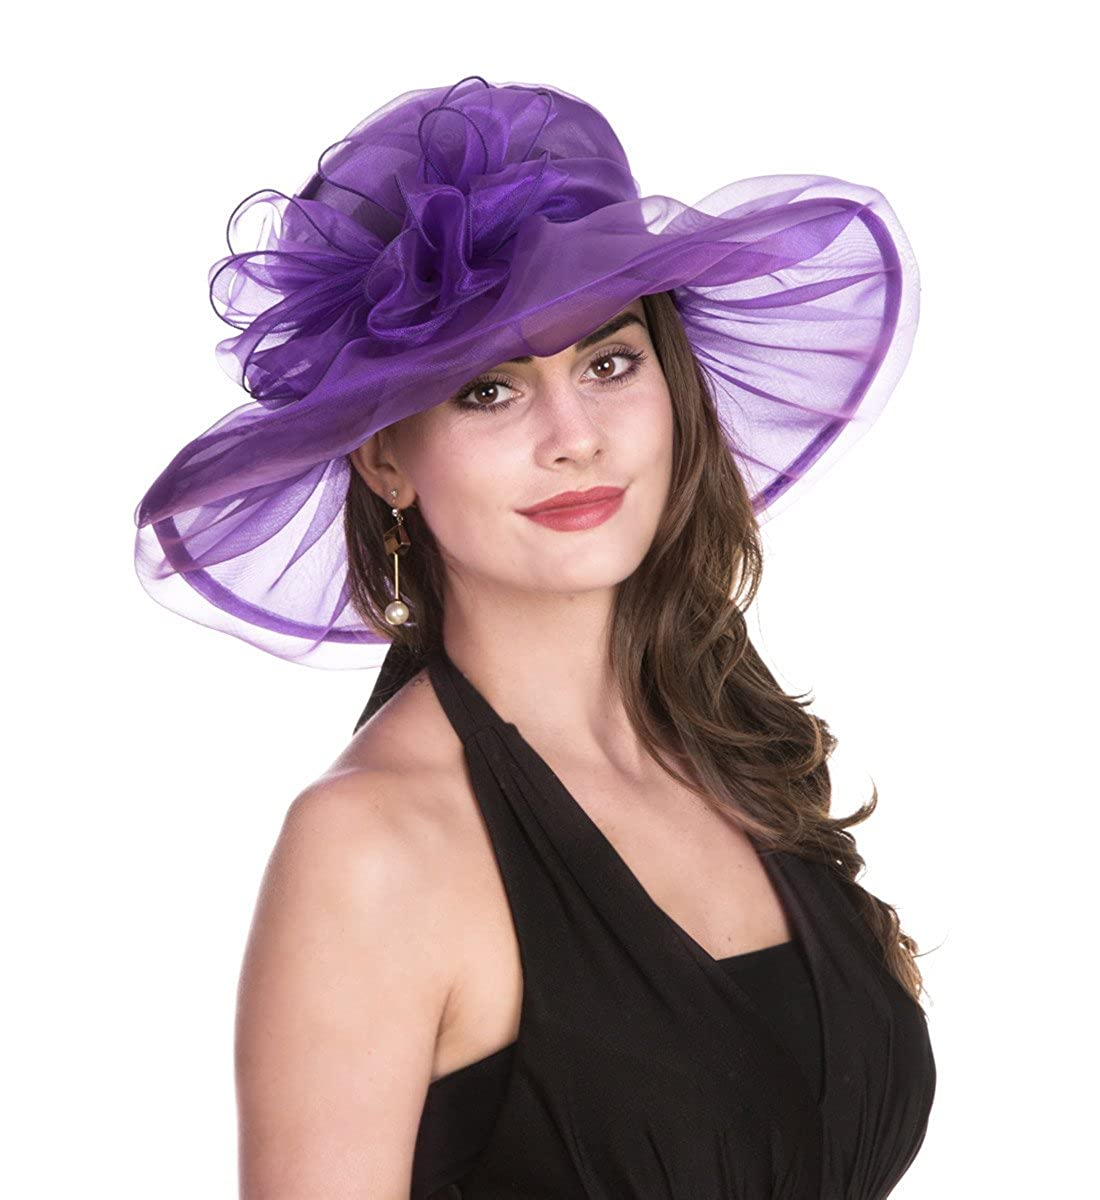 ddbcea02578c SAFERIN Women's Organza Church Kentucky Derby Fascinator Bridal Tea Party  Wedding Hat (1-Purple Bowknot) at Amazon Women's Clothing store: